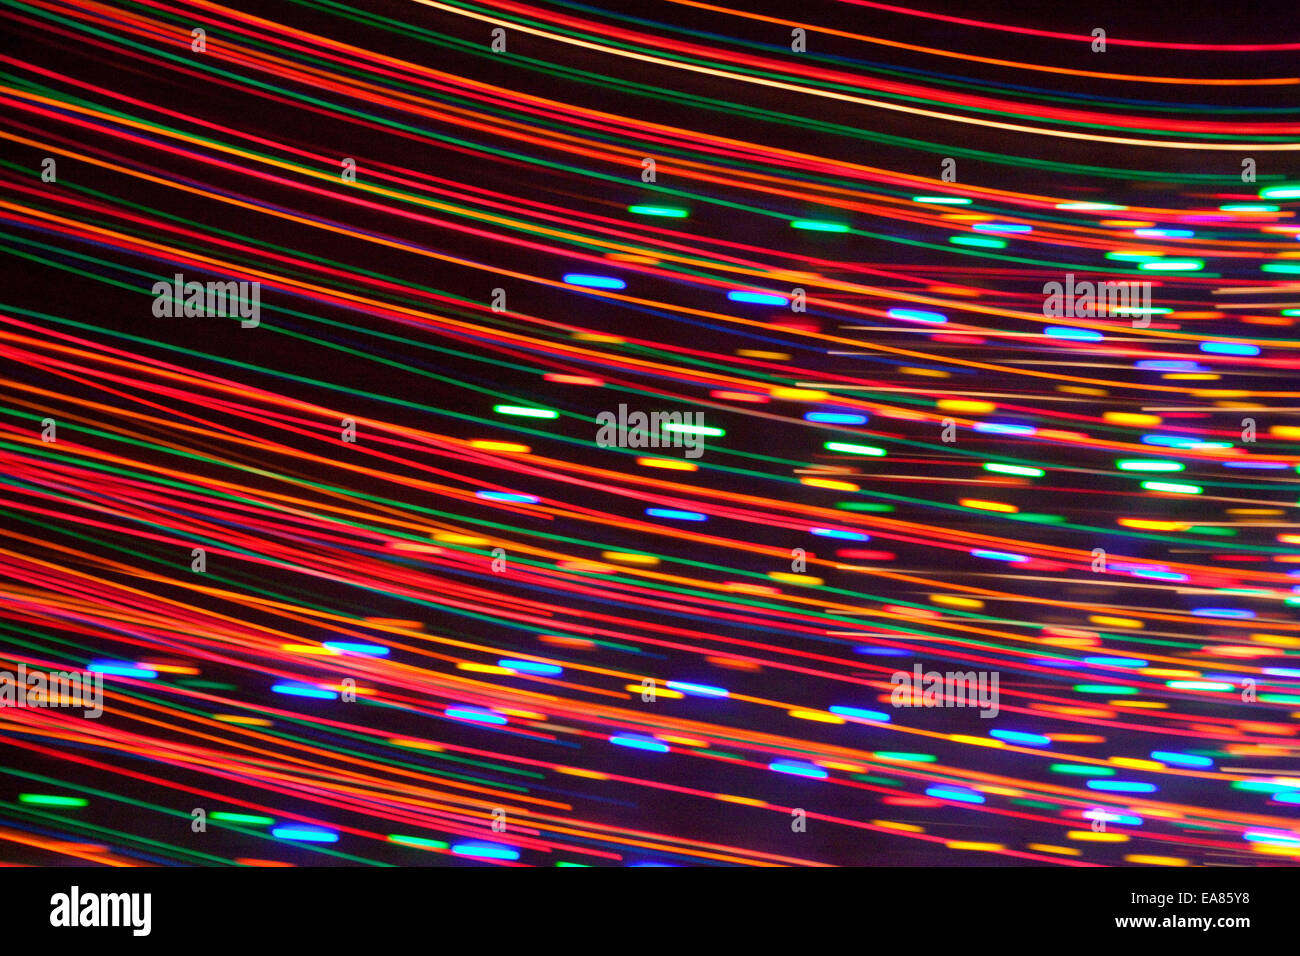 Streak of colored lights from Christmas Holiday Lights. - Stock Image